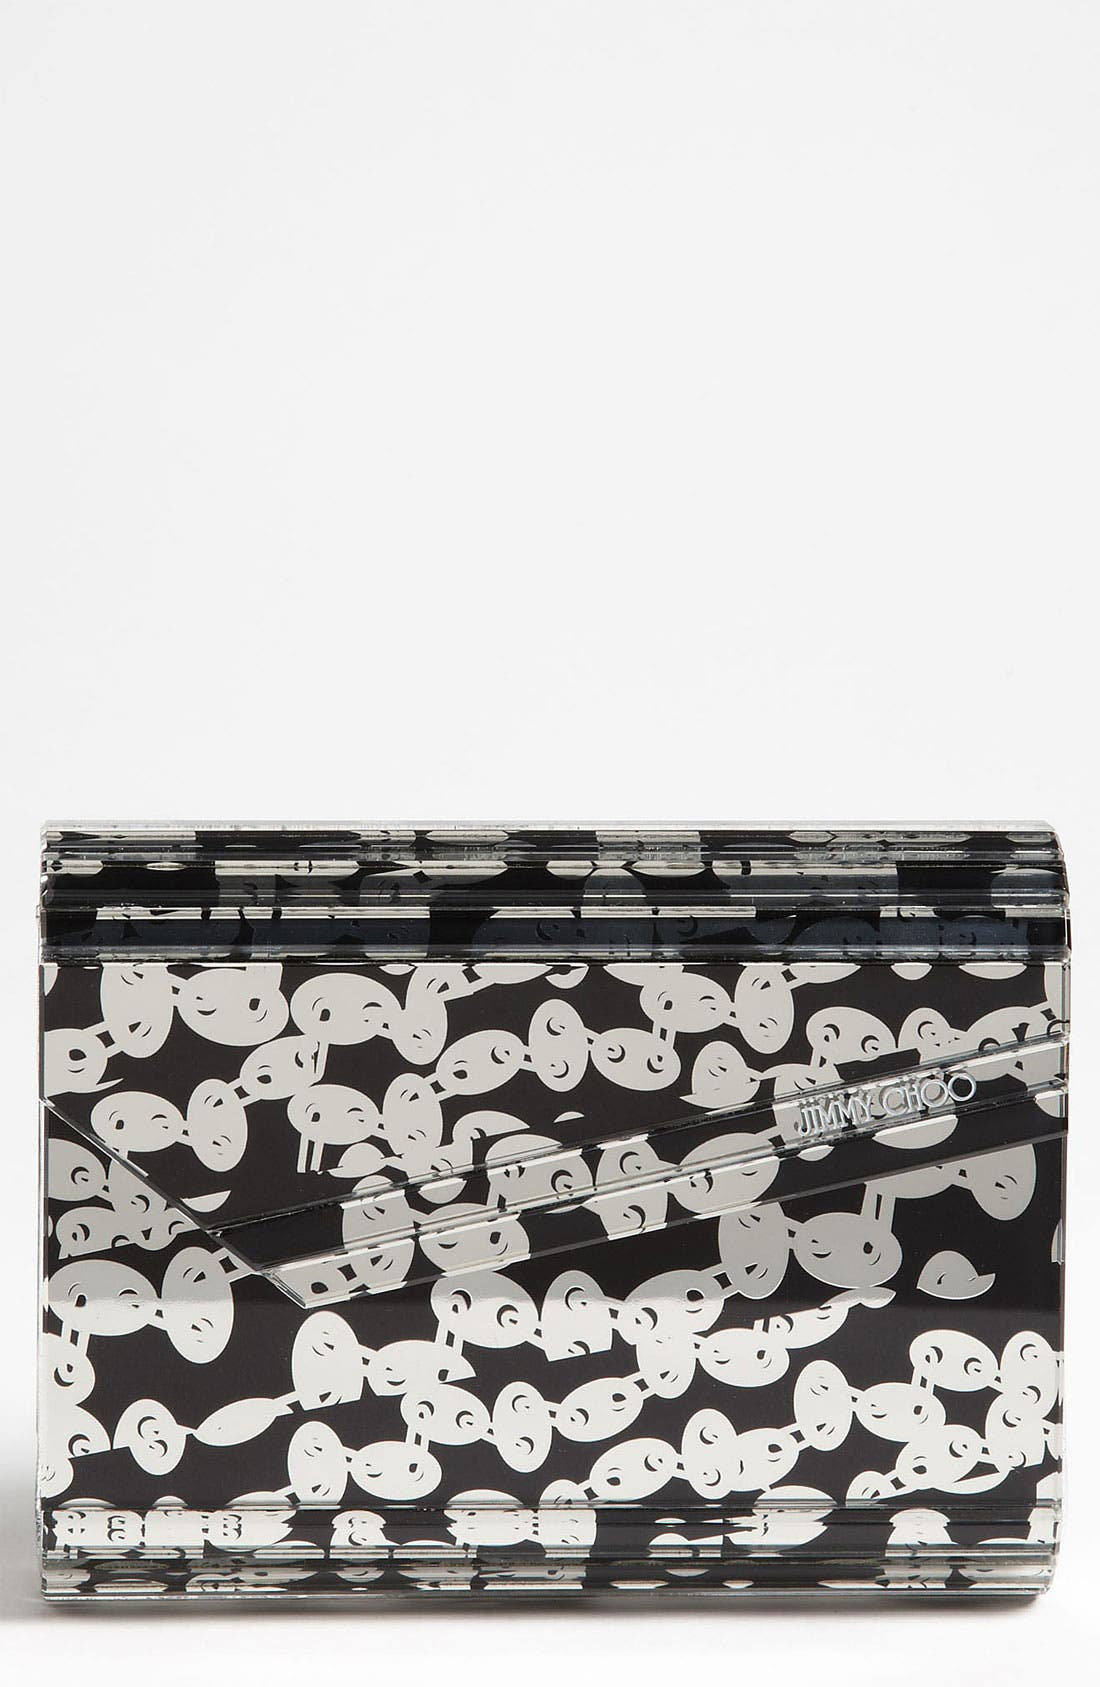 Alternate Image 1 Selected - Jimmy Choo 'Candy Mirror' Clutch